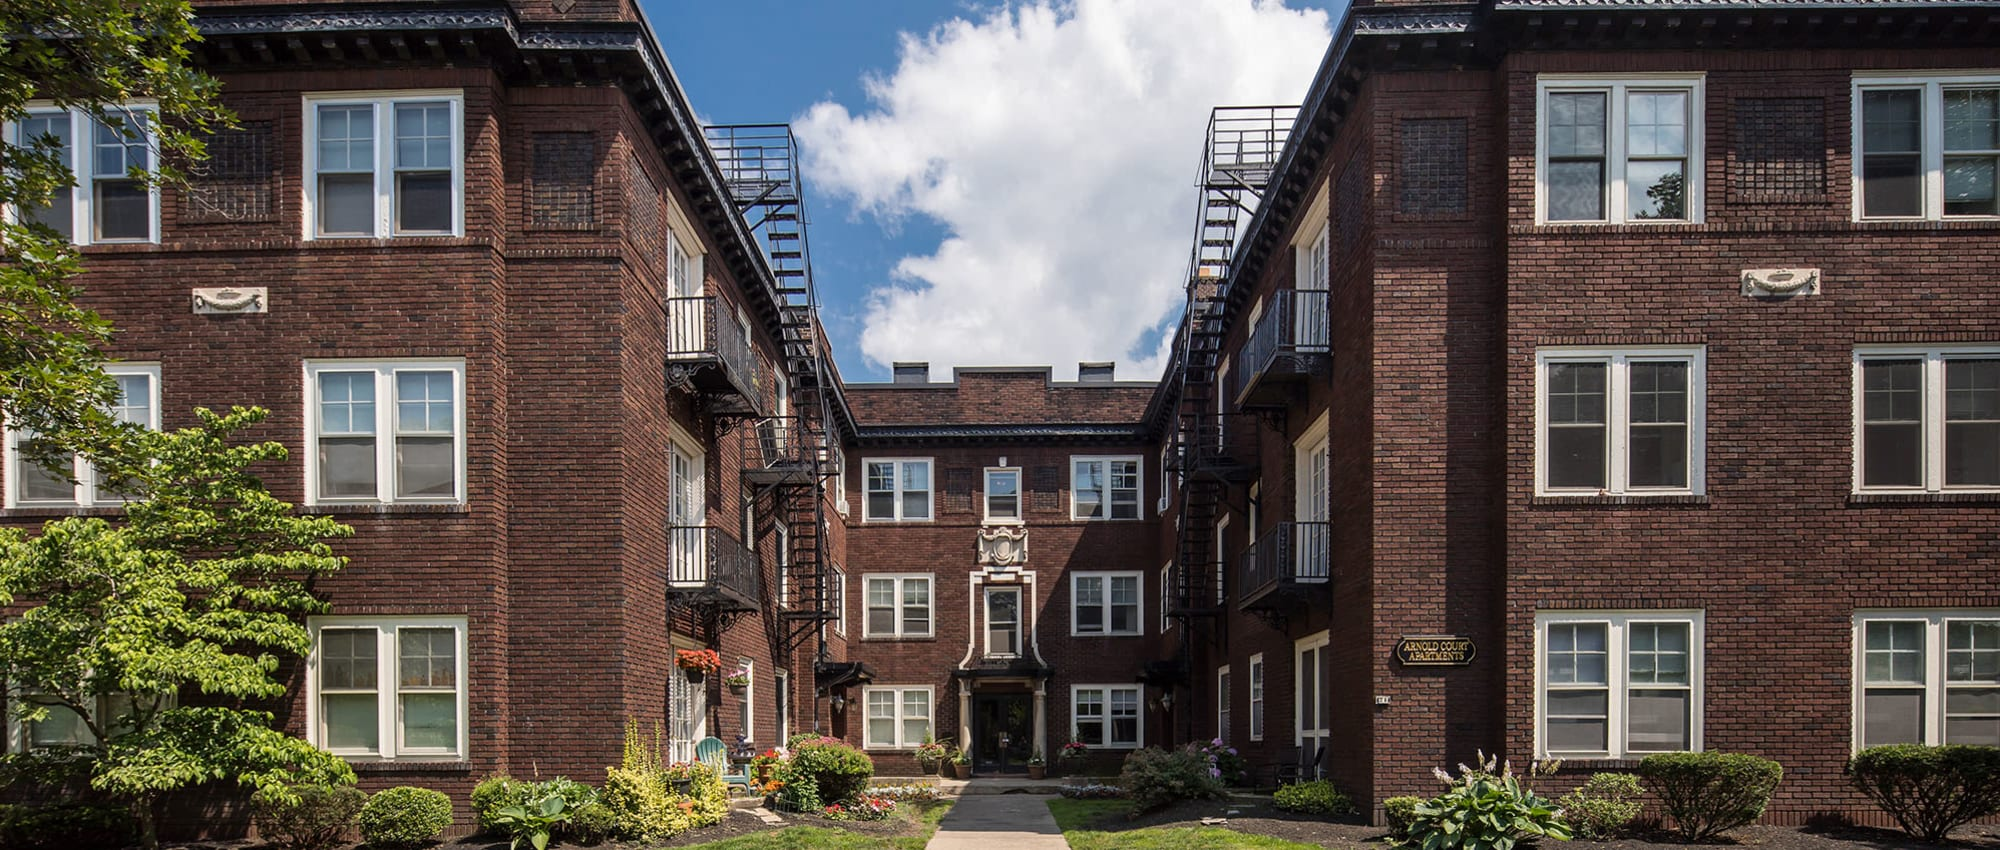 Arnold Court apartments in Rochester, New York